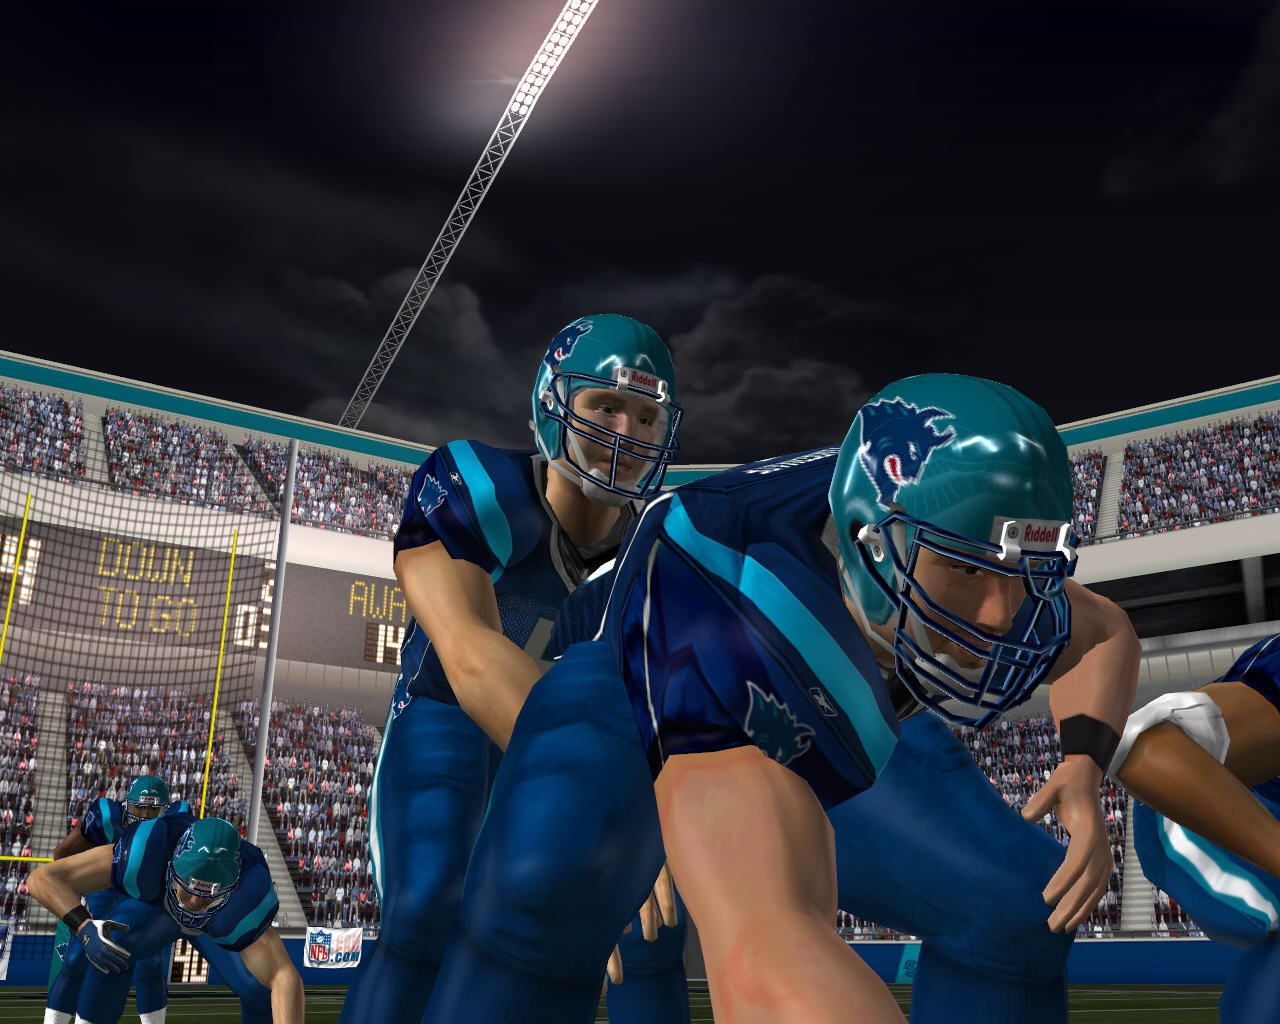 Madden NFL 07 Windows Nothing illegal going on here.